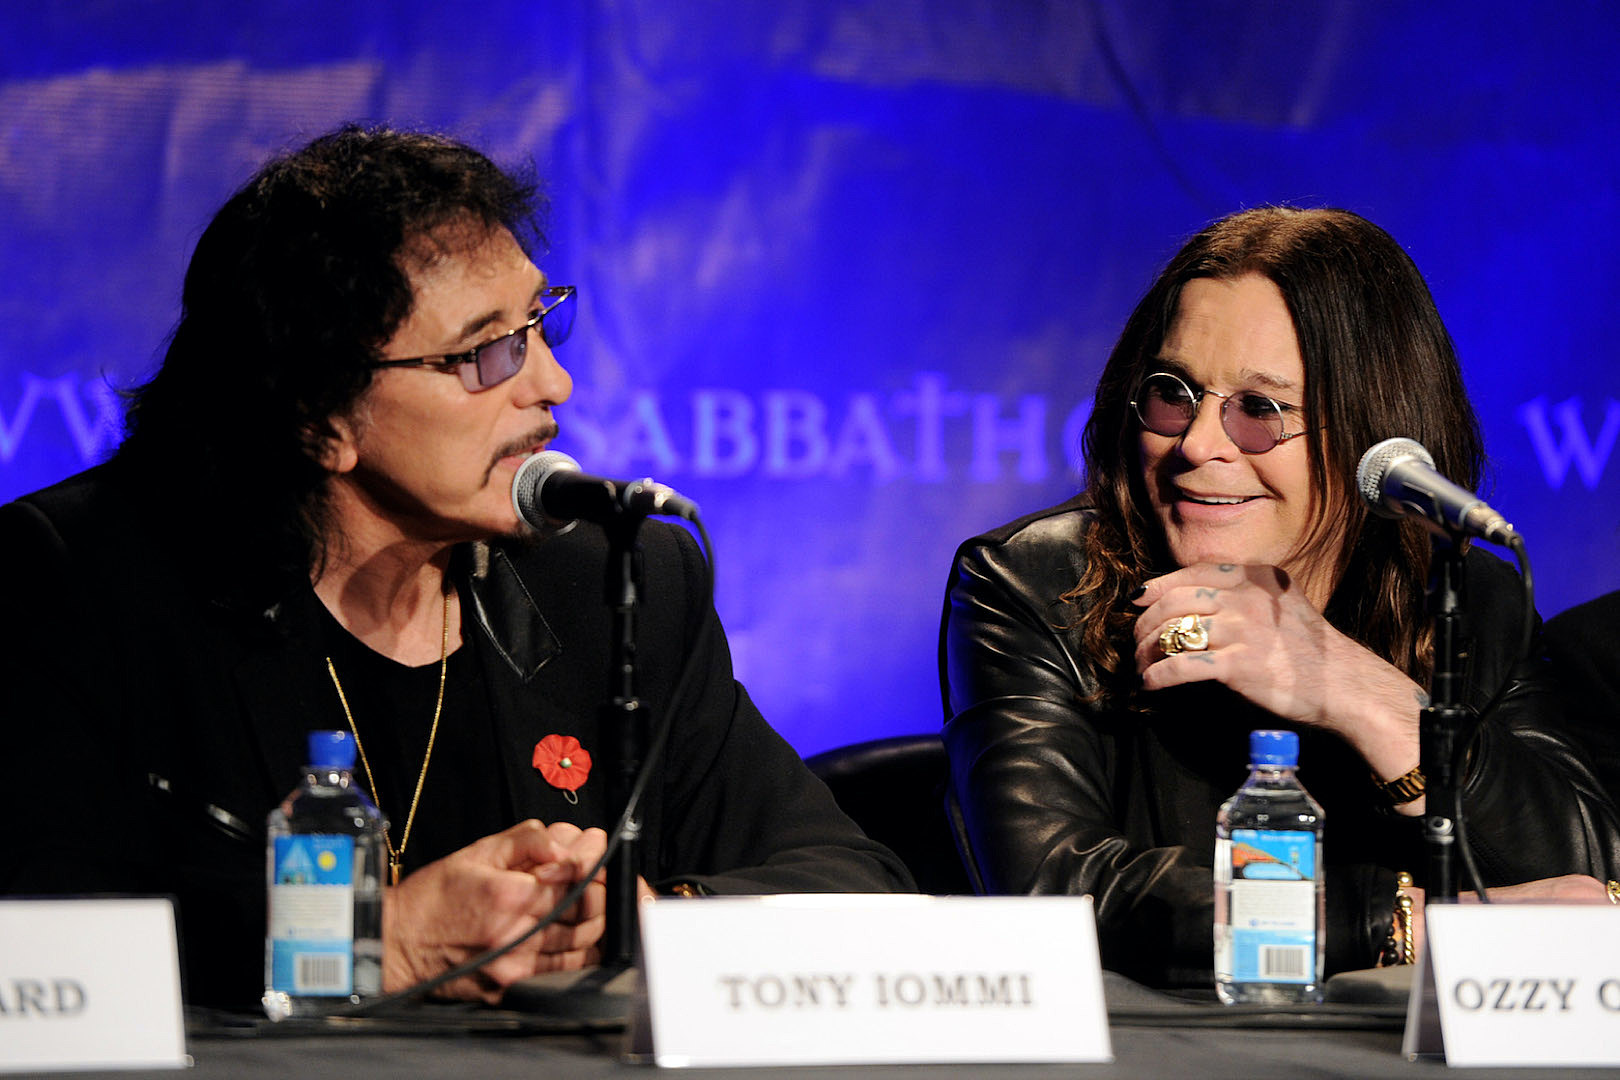 Tony Iommi + Ozzy Osbourne Talk Every Day Now Amid Coronavirus Pandemic